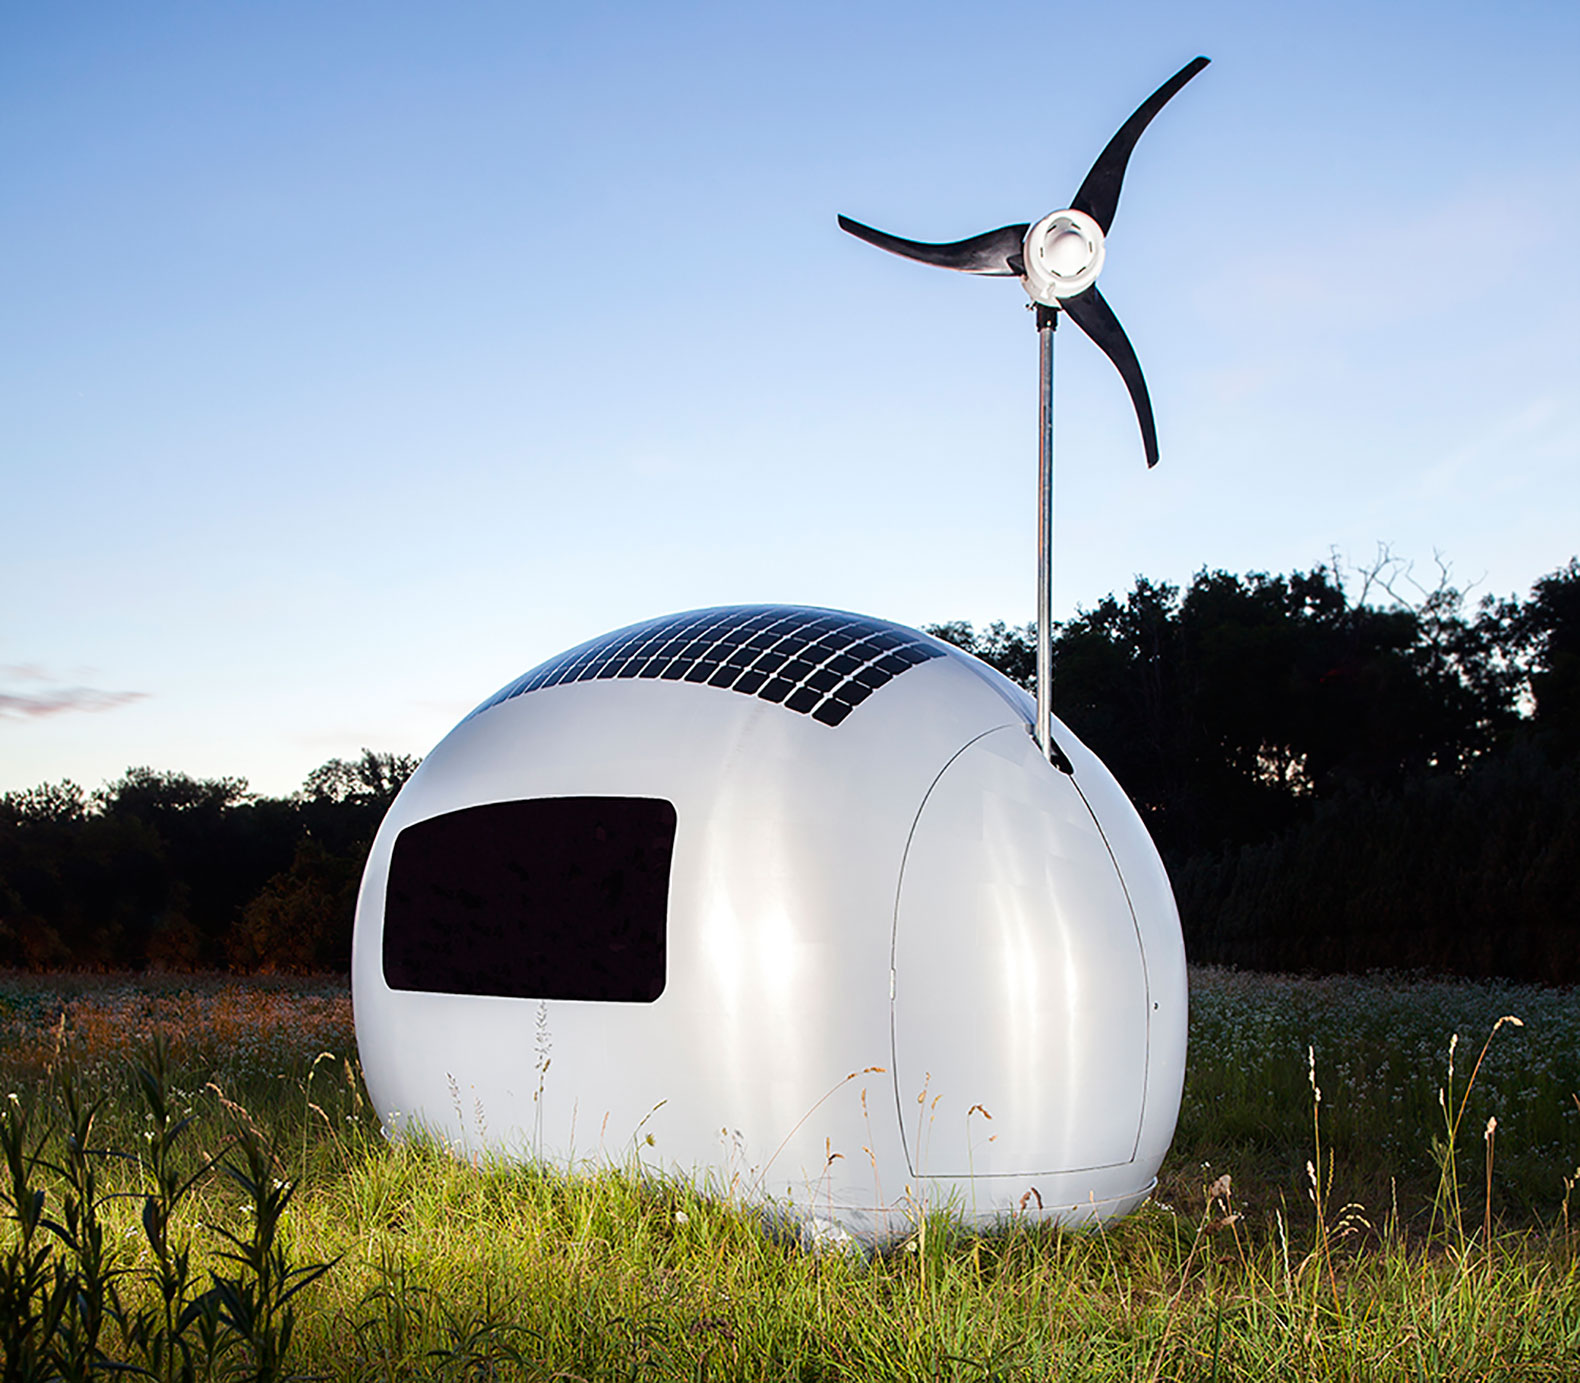 World's first off-grid Ecocapsule home to hit the market this year, shipping in 2016